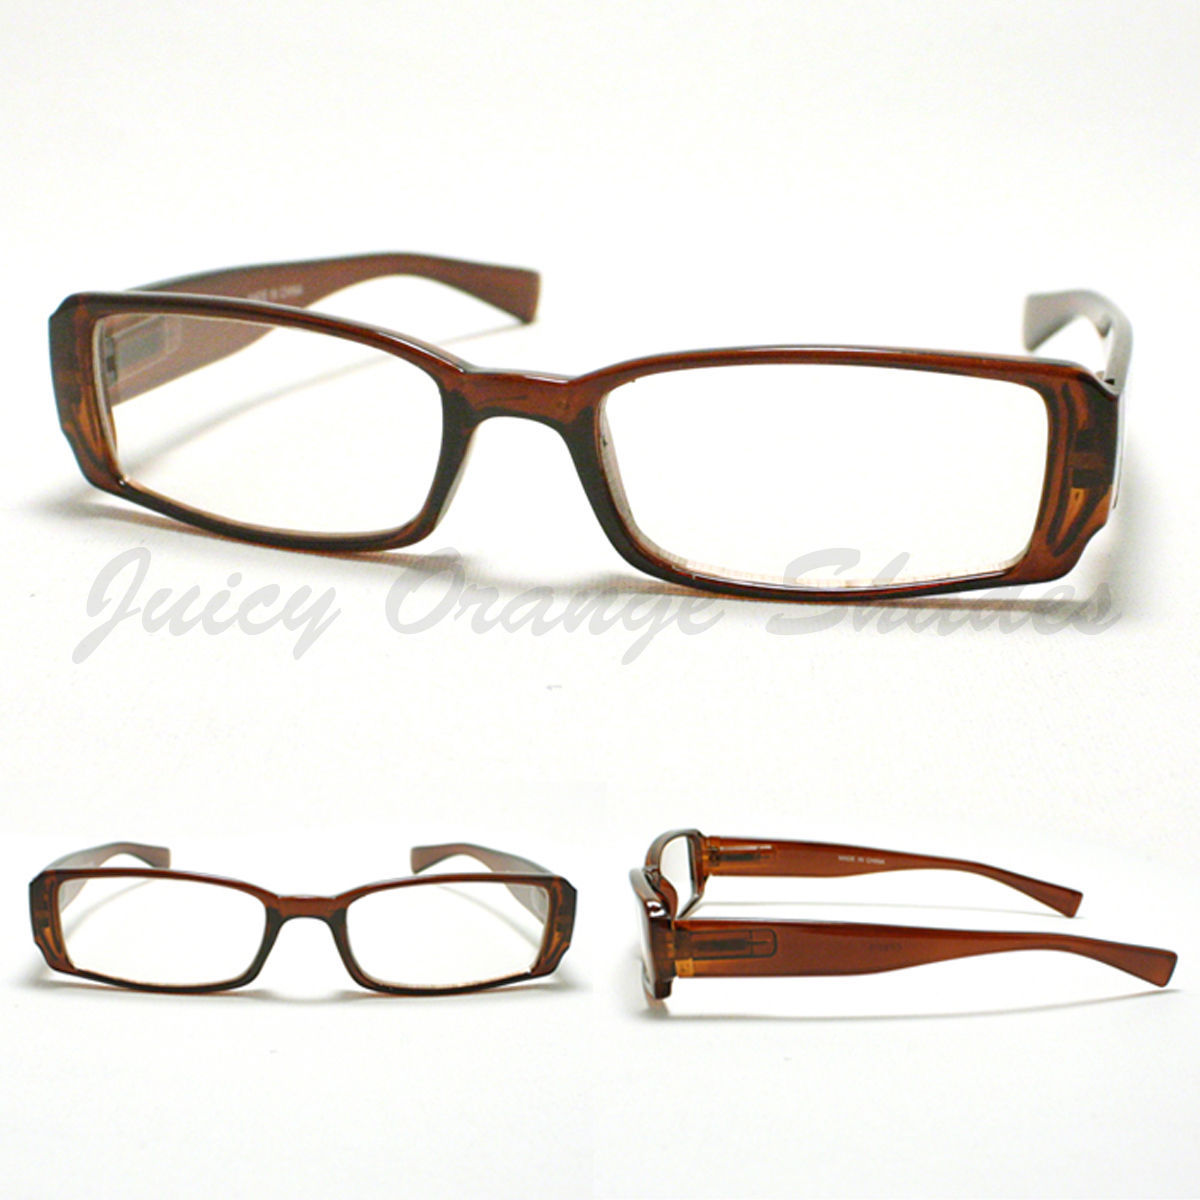 SMALL RECTANGULAR Eyeglass Frames BROWN SIMPLE CLASSIC CASUAL NARROW Design